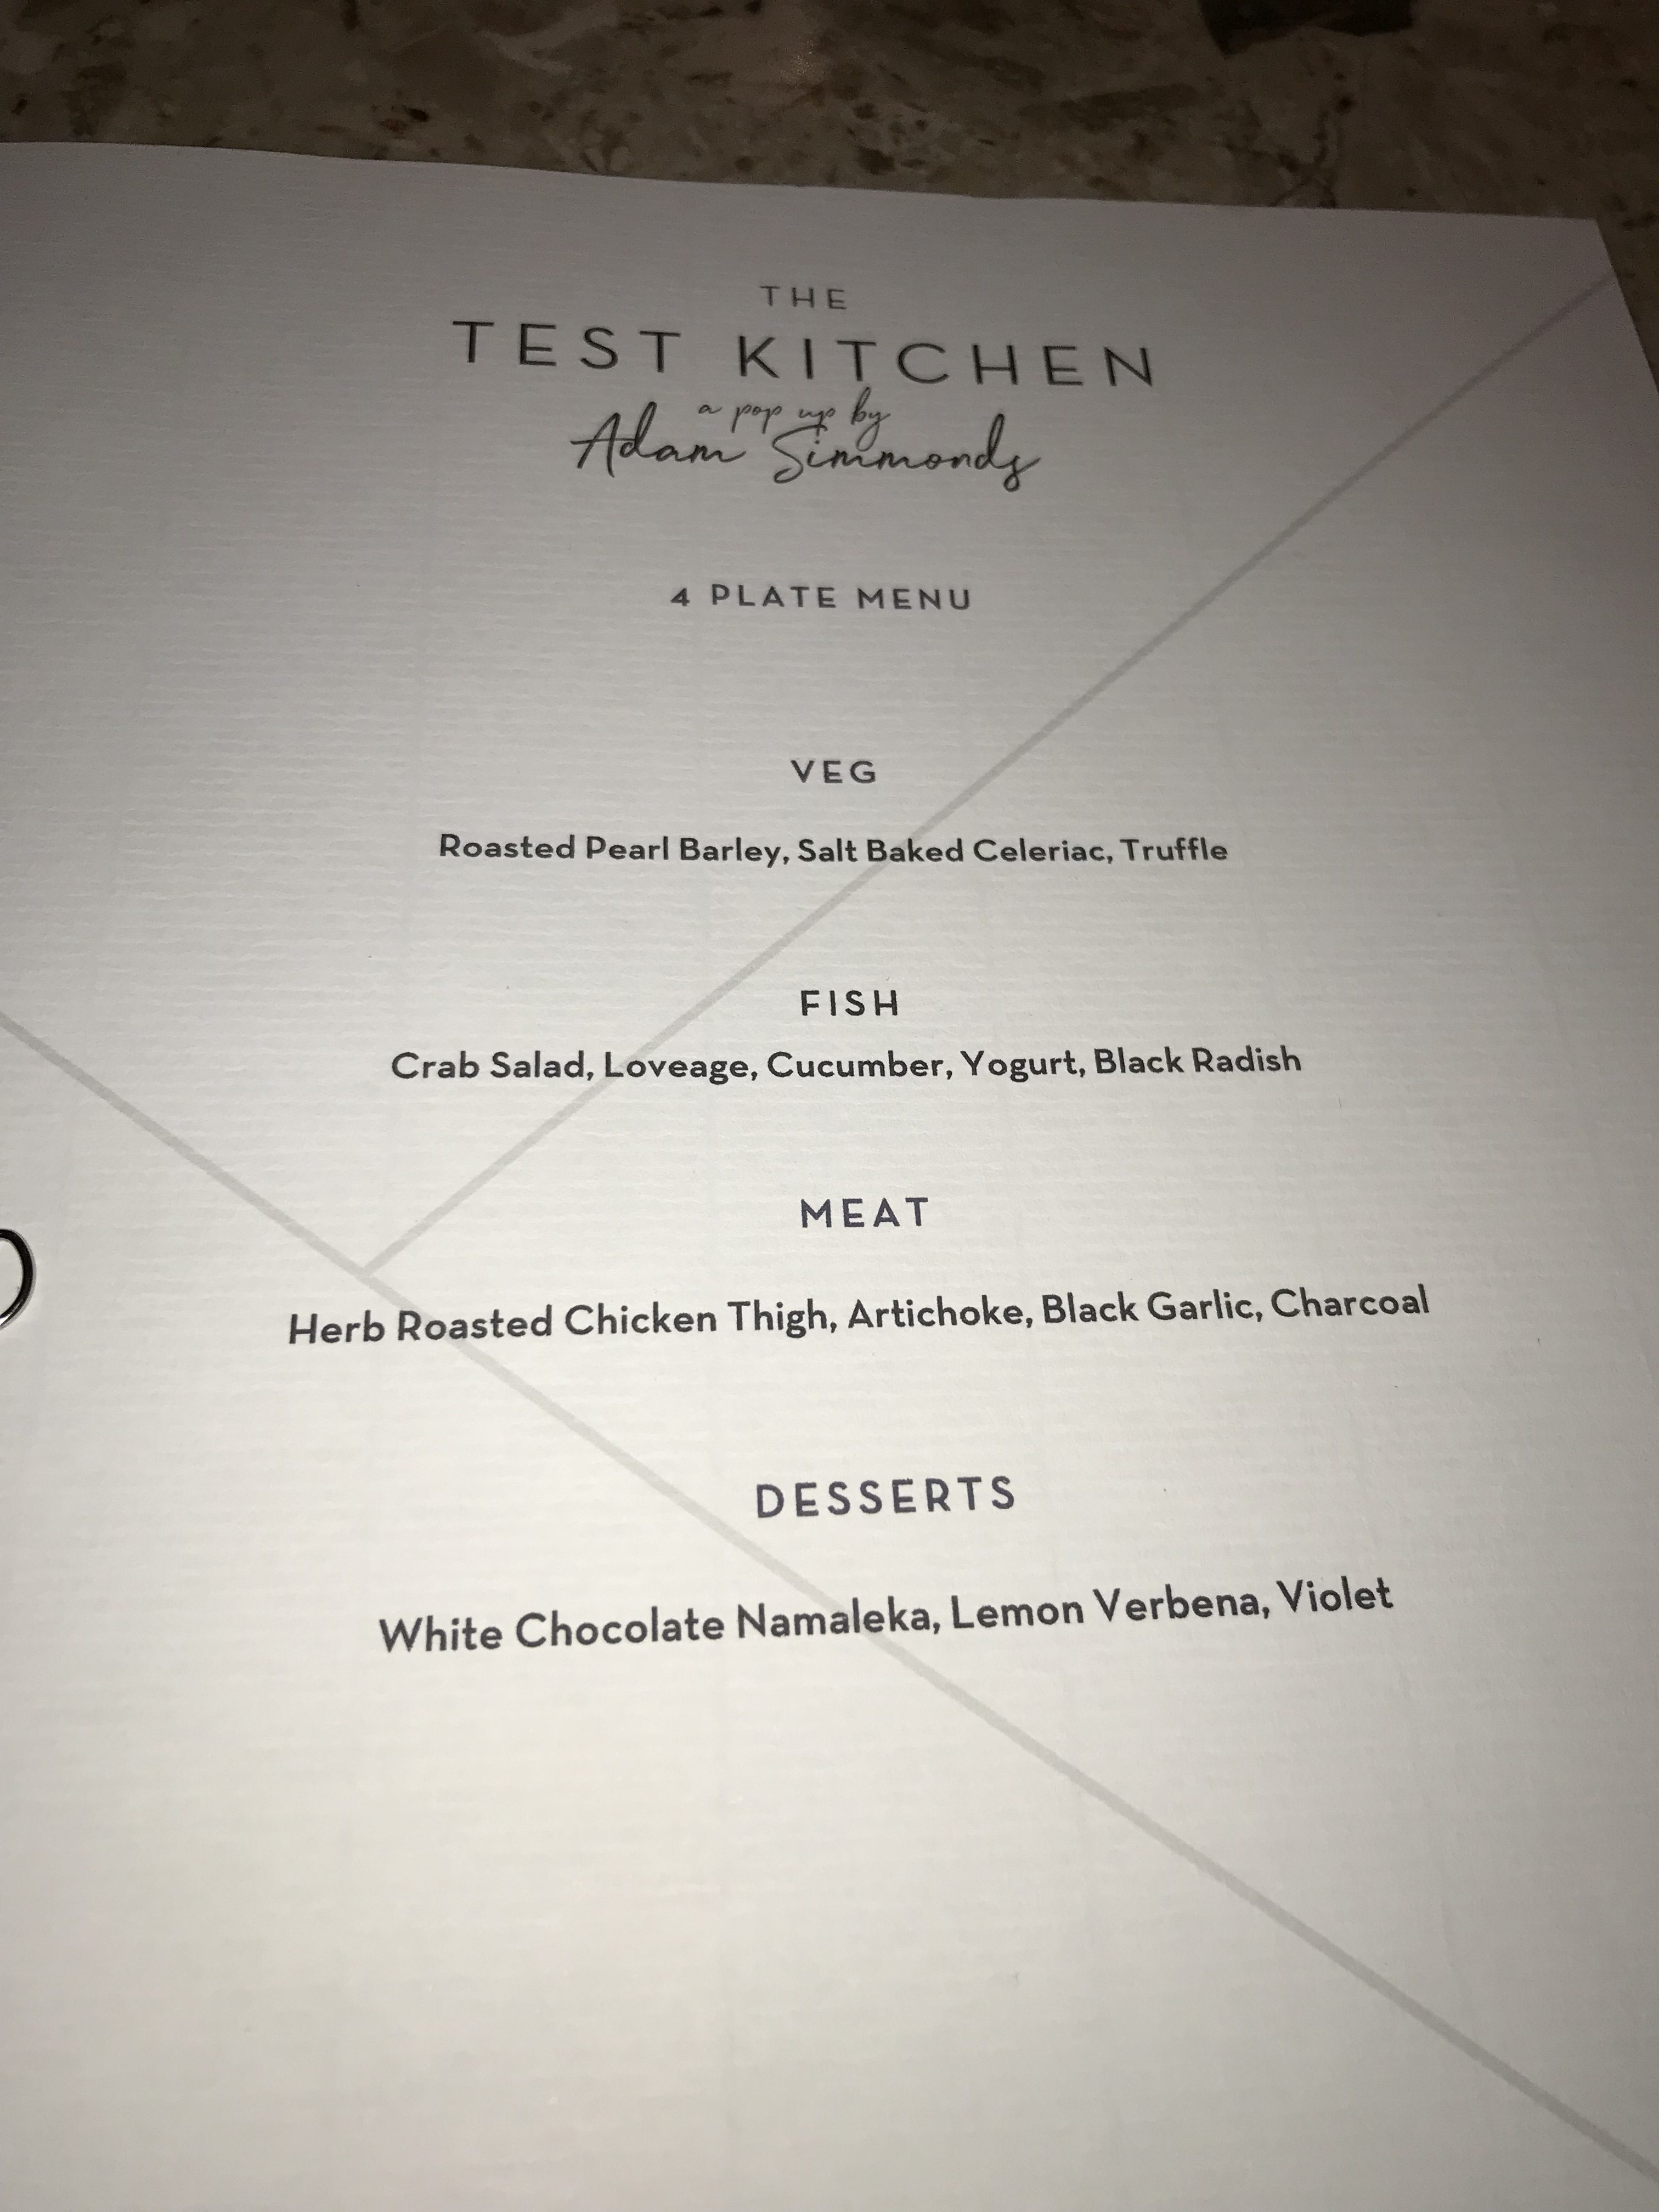 The Test Kitchen - A pop-up by Adam Simmonds